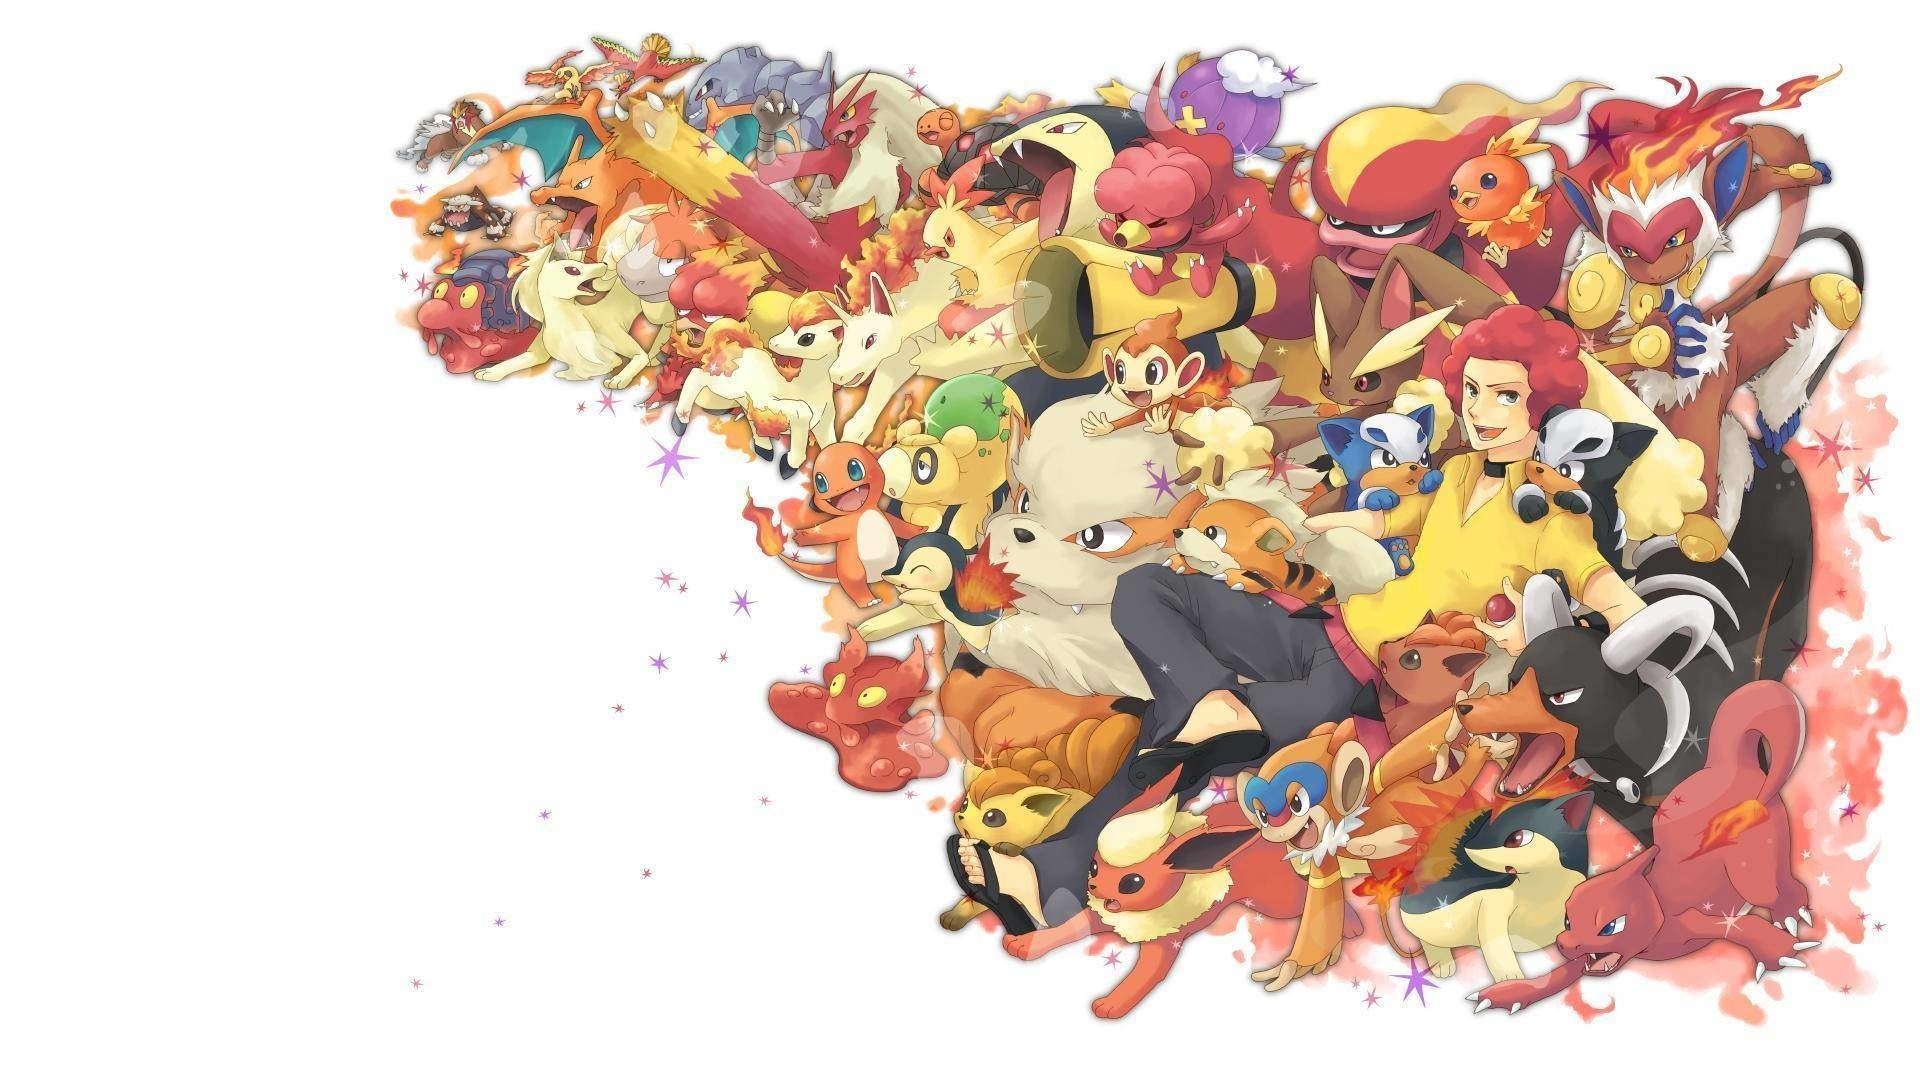 1920x1080 all pokemon wallpaper hd #91509